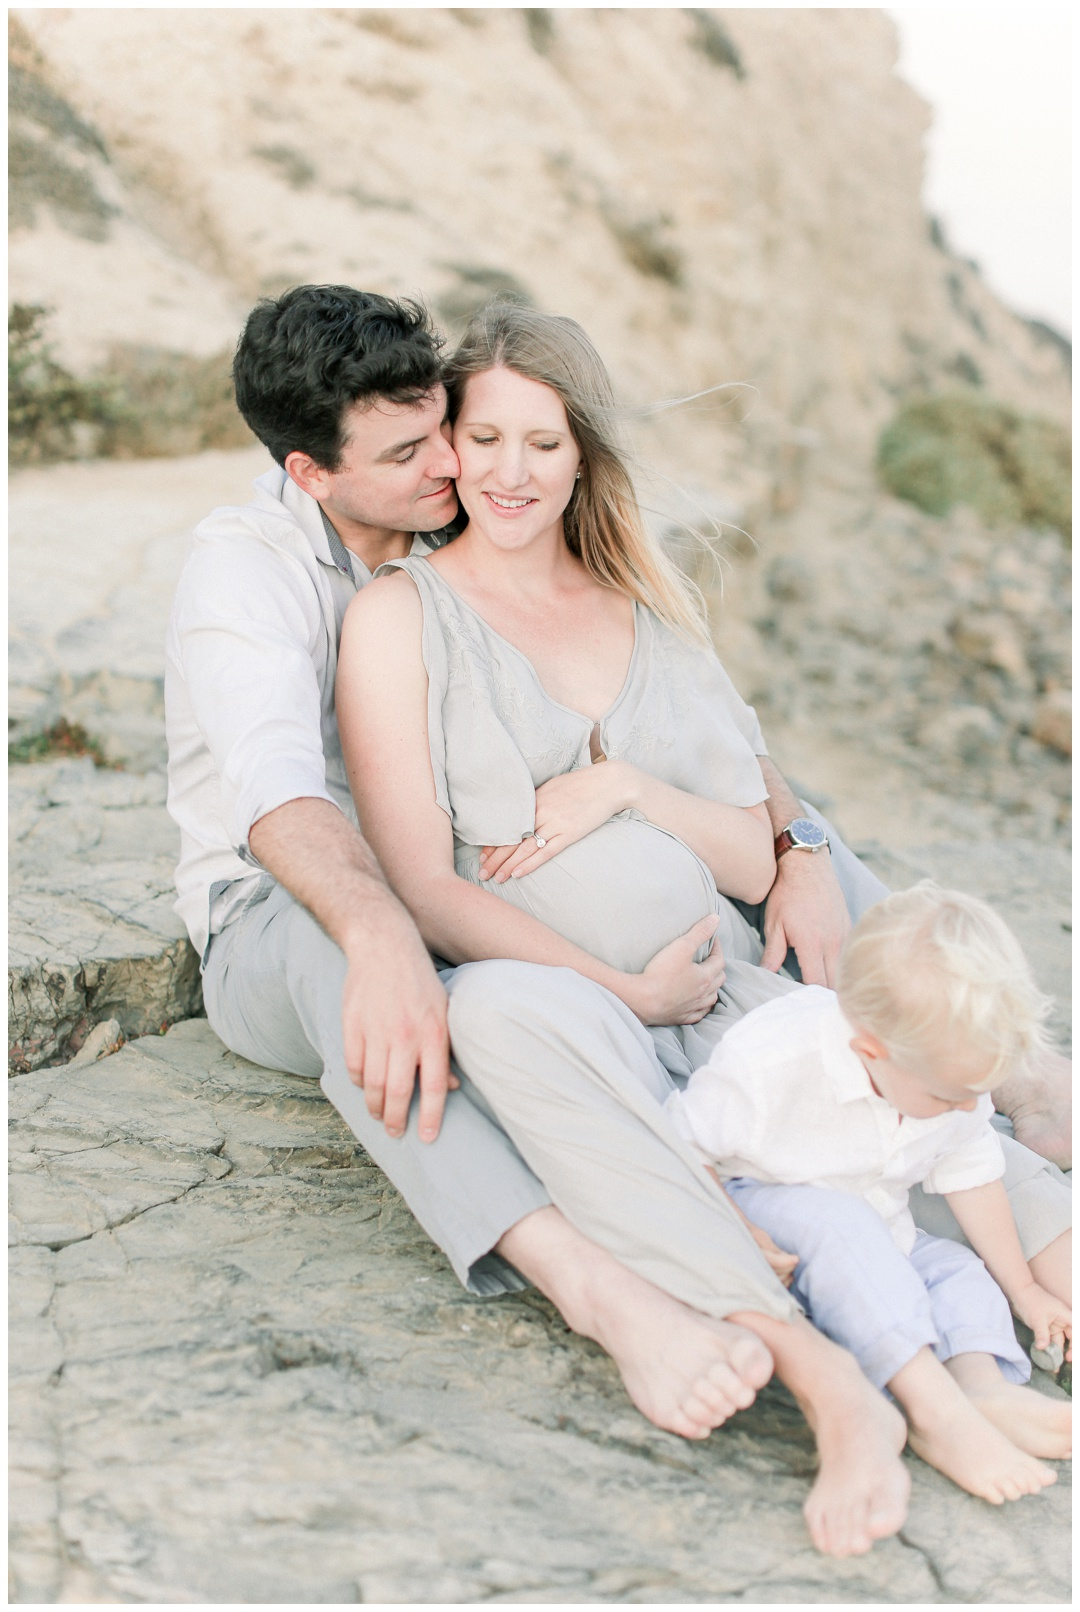 The_Epler's_Family_Newport_Beach_Family_Photographer_Orange_County_Family_Photography_Cori_Kleckner_Photography_Orange_County_Beach_Photographer_Family_Photos_Session_Crystal_Cove_Session__1462.jpg